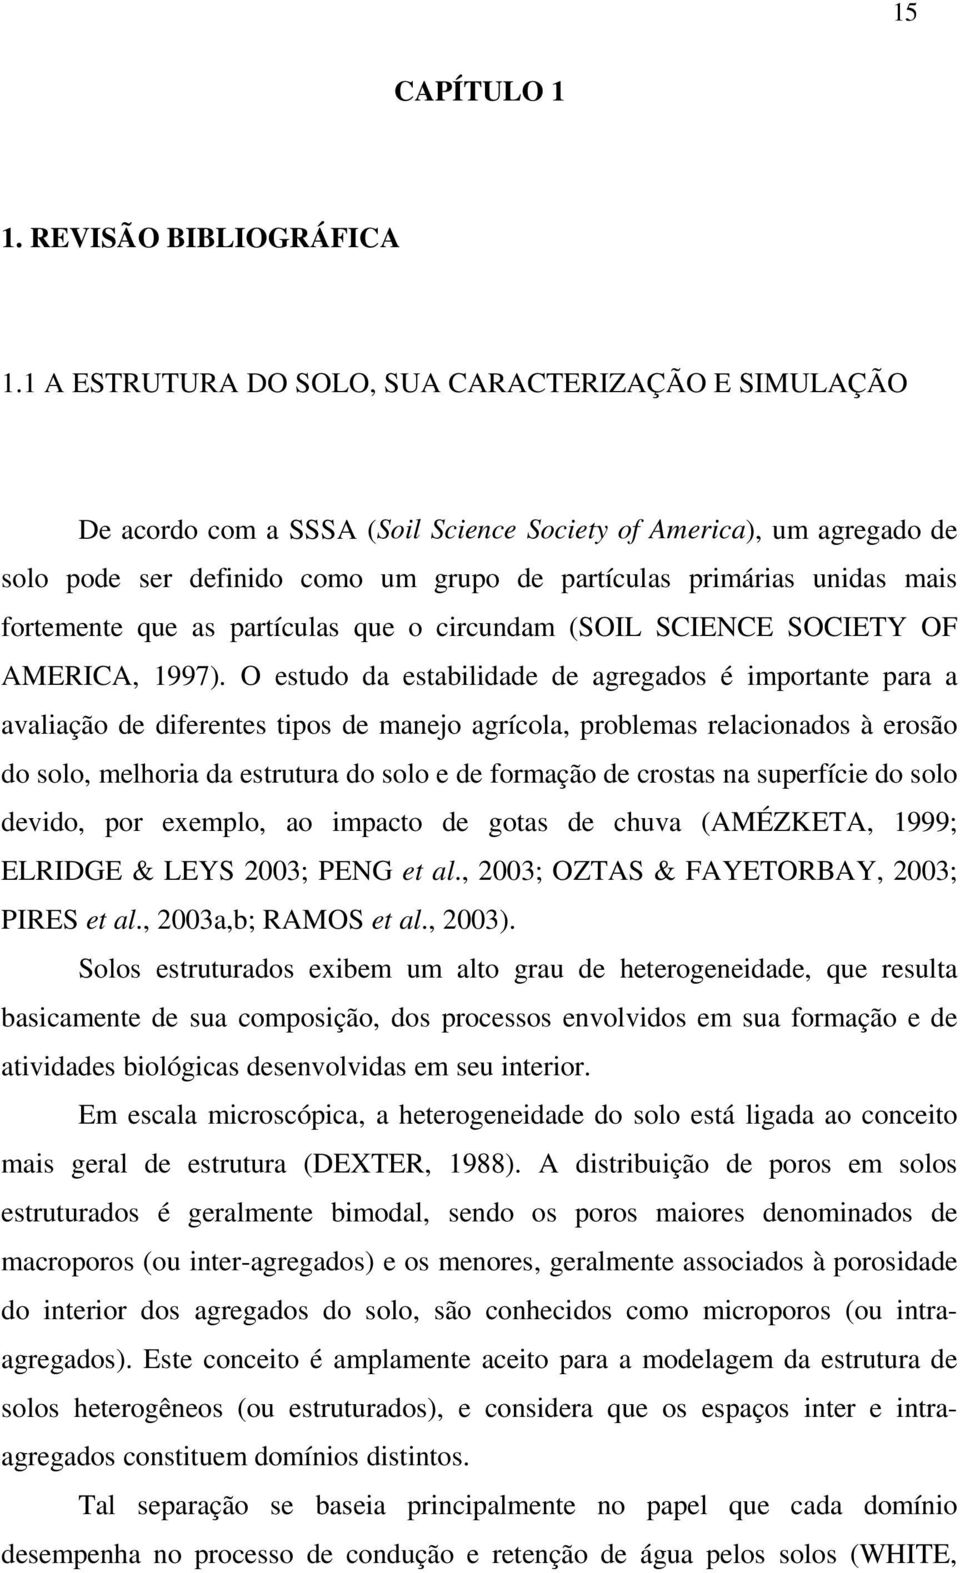 fortemente que as partículas que o circundam (SOIL SCIENCE SOCIETY OF AMERICA, 1997).